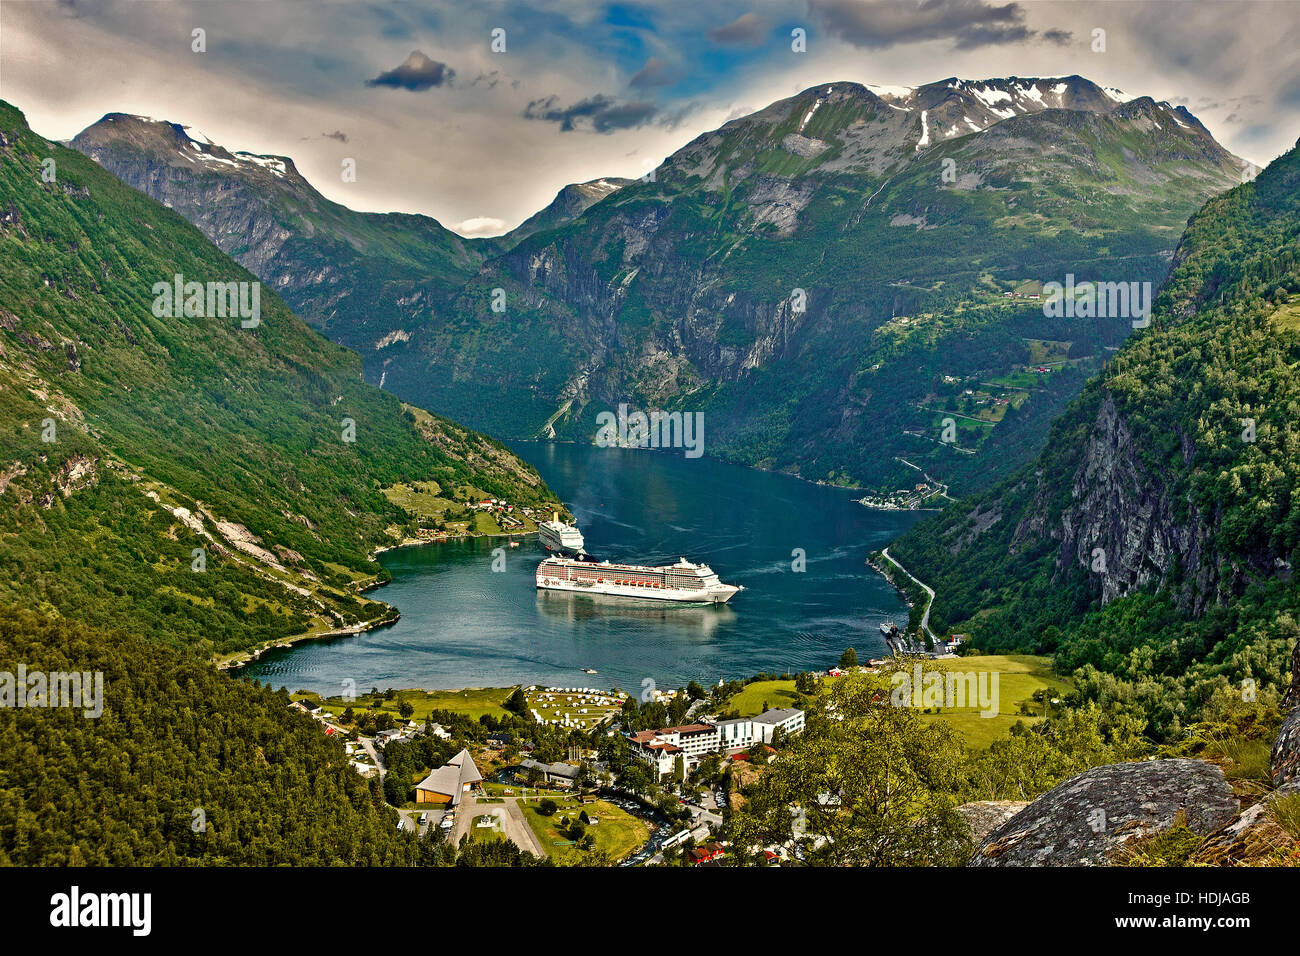 Ships Moored In Geiranger Fjord Norway - Stock Image